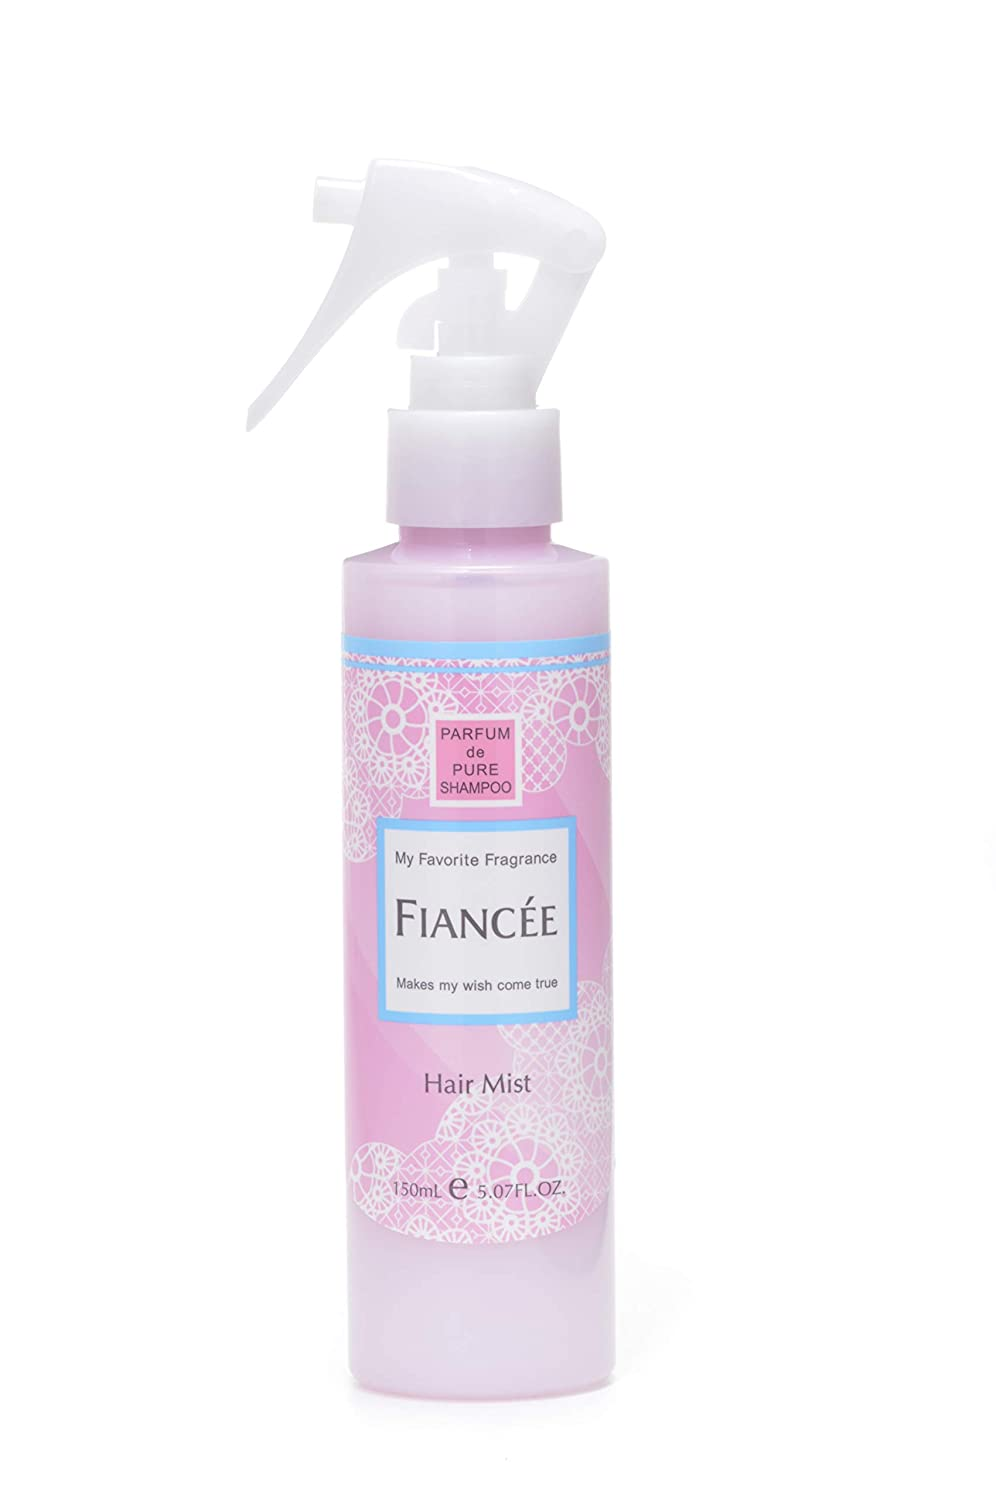 FIANCEE All items Industry No. 1 in the store SCENTED HAIR MIST PURE SHAMPOO mL FRAGRANCE 150